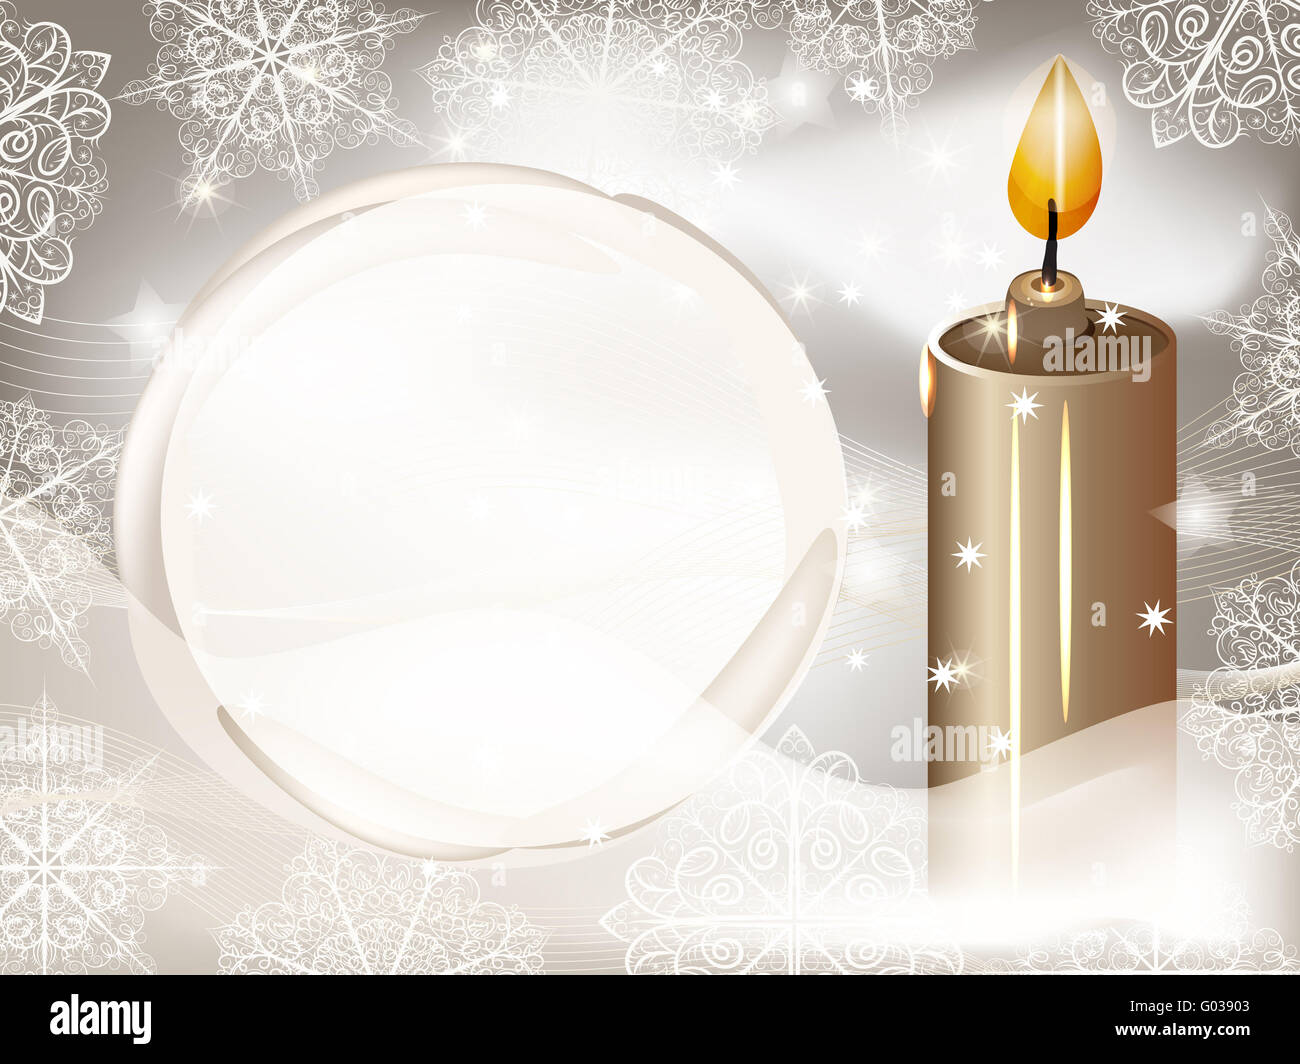 vector candle on winter background with snowflakes and snowball for your text - Stock Image